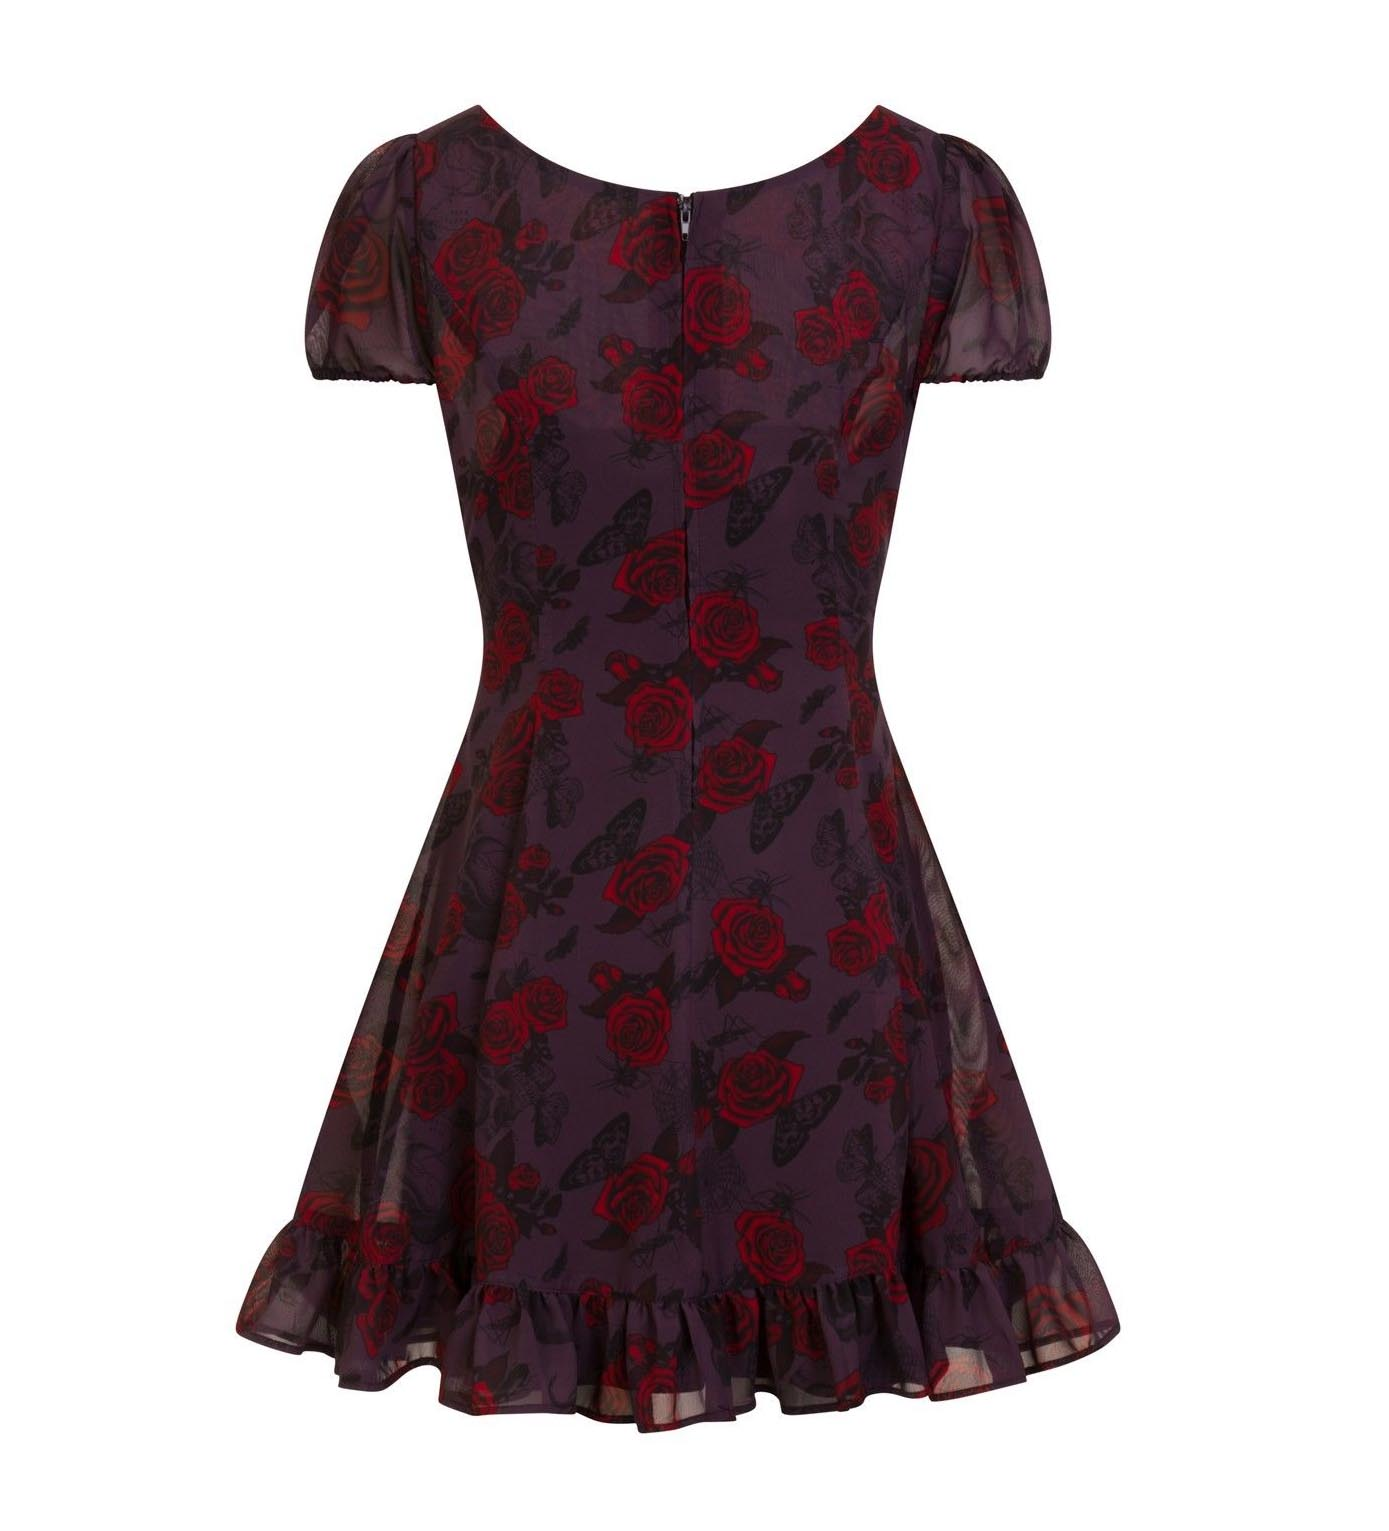 Hell-Bunny-Goth-Floaty-Mini-Dress-BUGS-amp-ROSES-Skulls-Butterfly-Purple-All-Sizes thumbnail 37